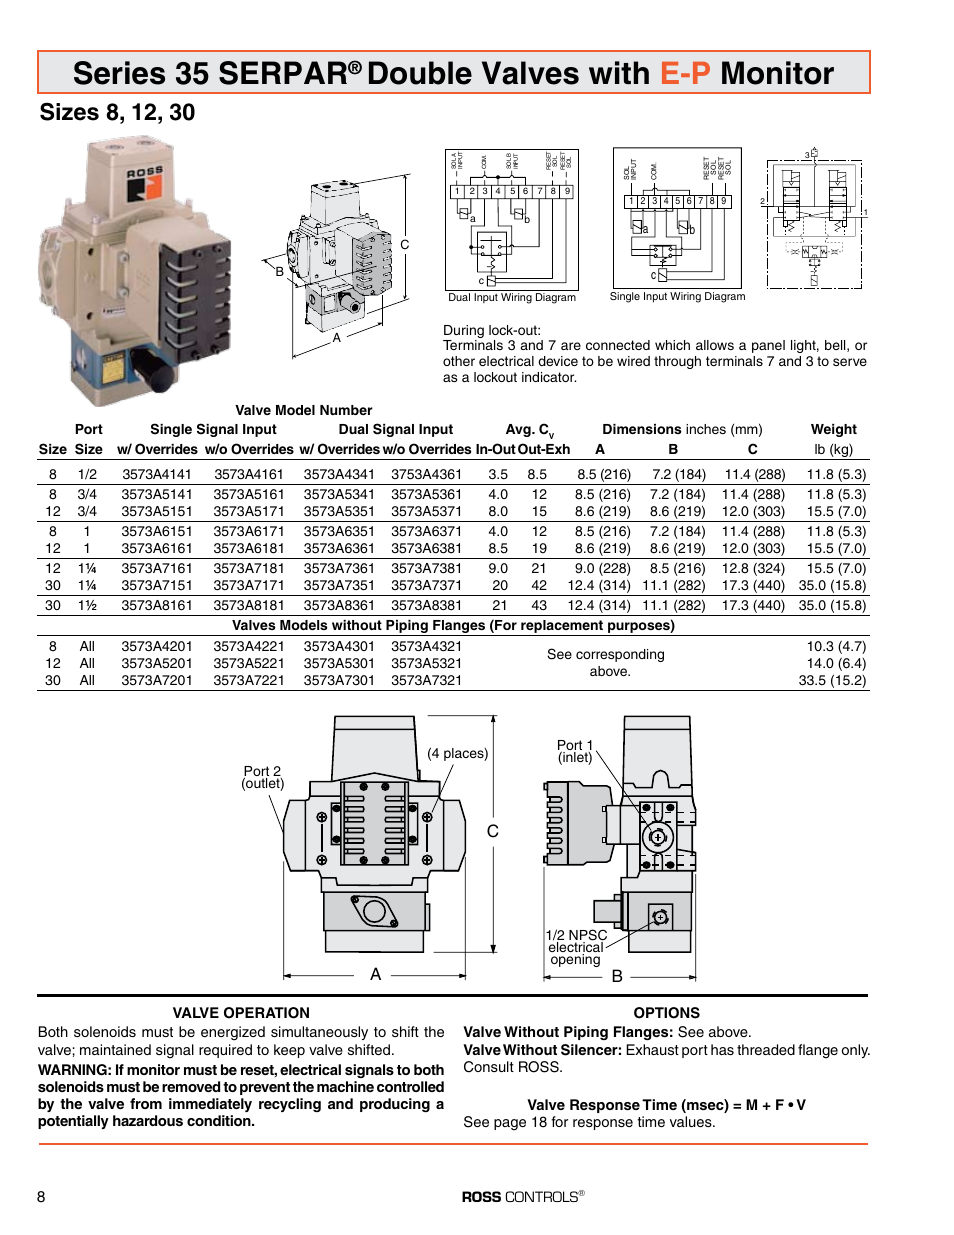 gas log valve wiring diagram ross valve wiring diagram serpar crossflow double valves with e-p monitor, series 35 ...